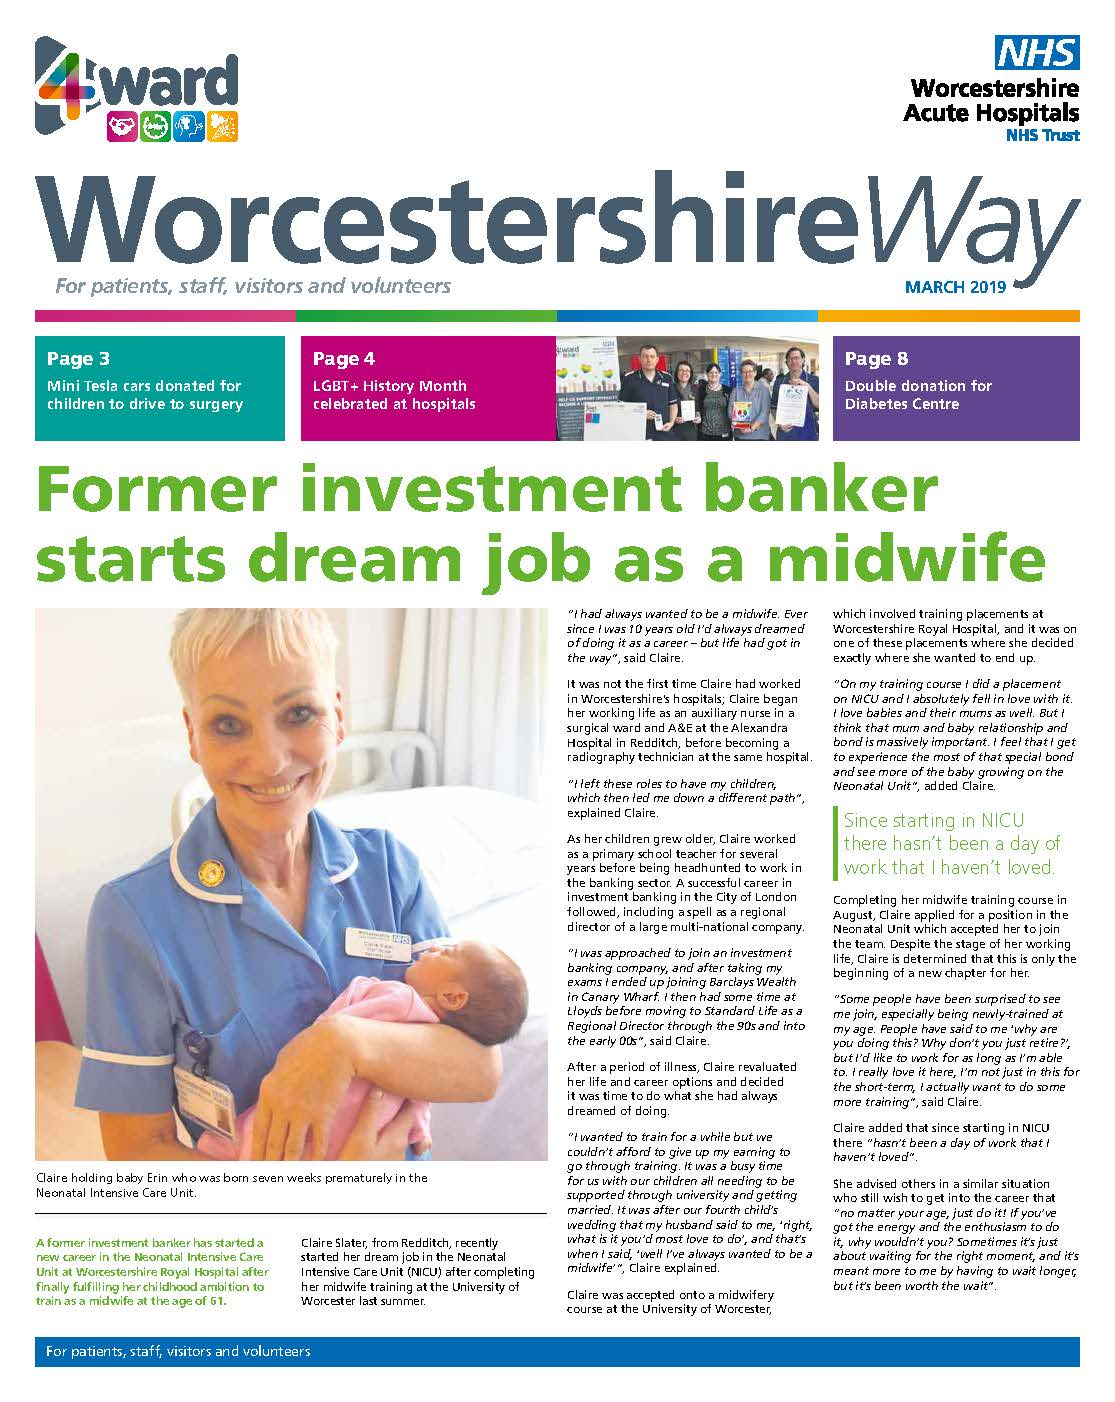 Worcestershire Way March 2019 WEB Page 1